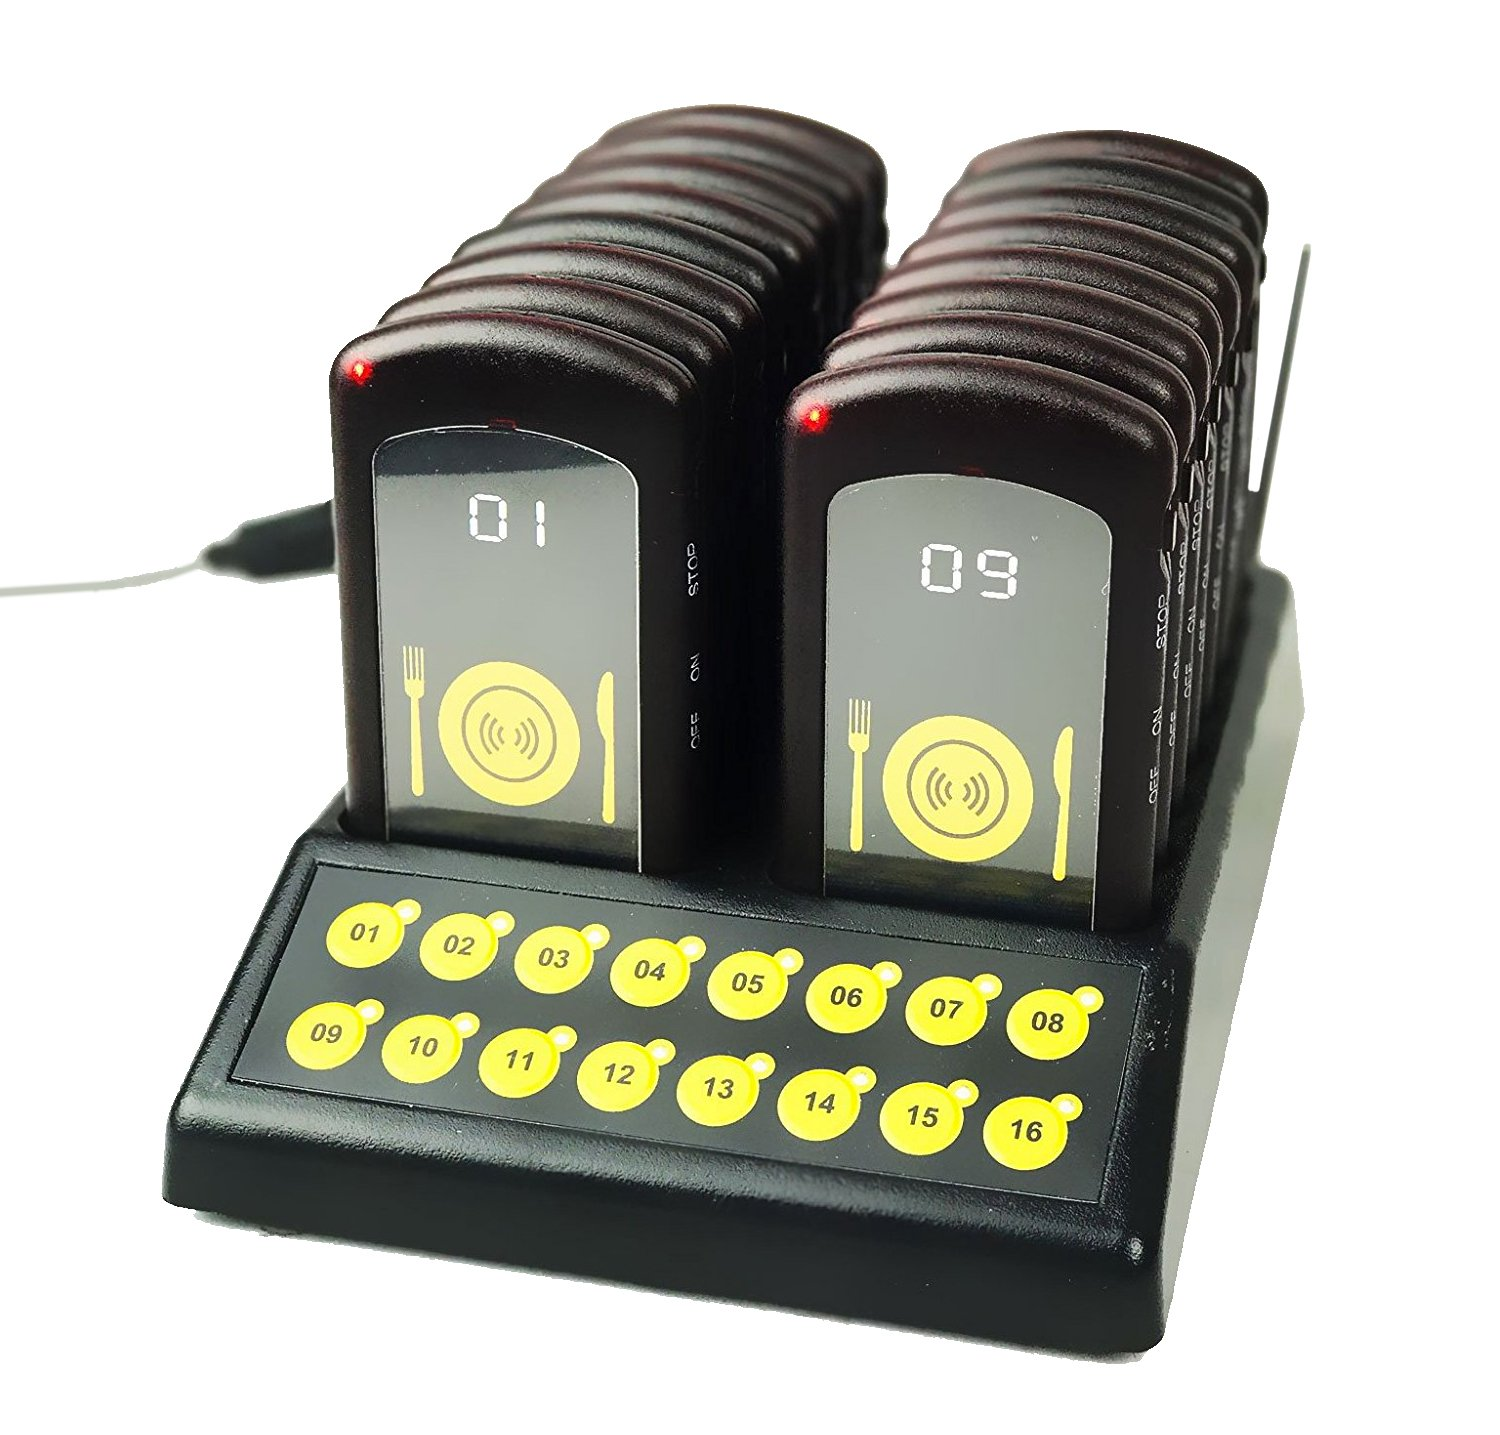 16 Restaurant Retail Call Coaster Rechargeable Pagers/Guest Waiting Pager/Wireless Portable Paging System with Charging Dock and Transmitter Angel Canada